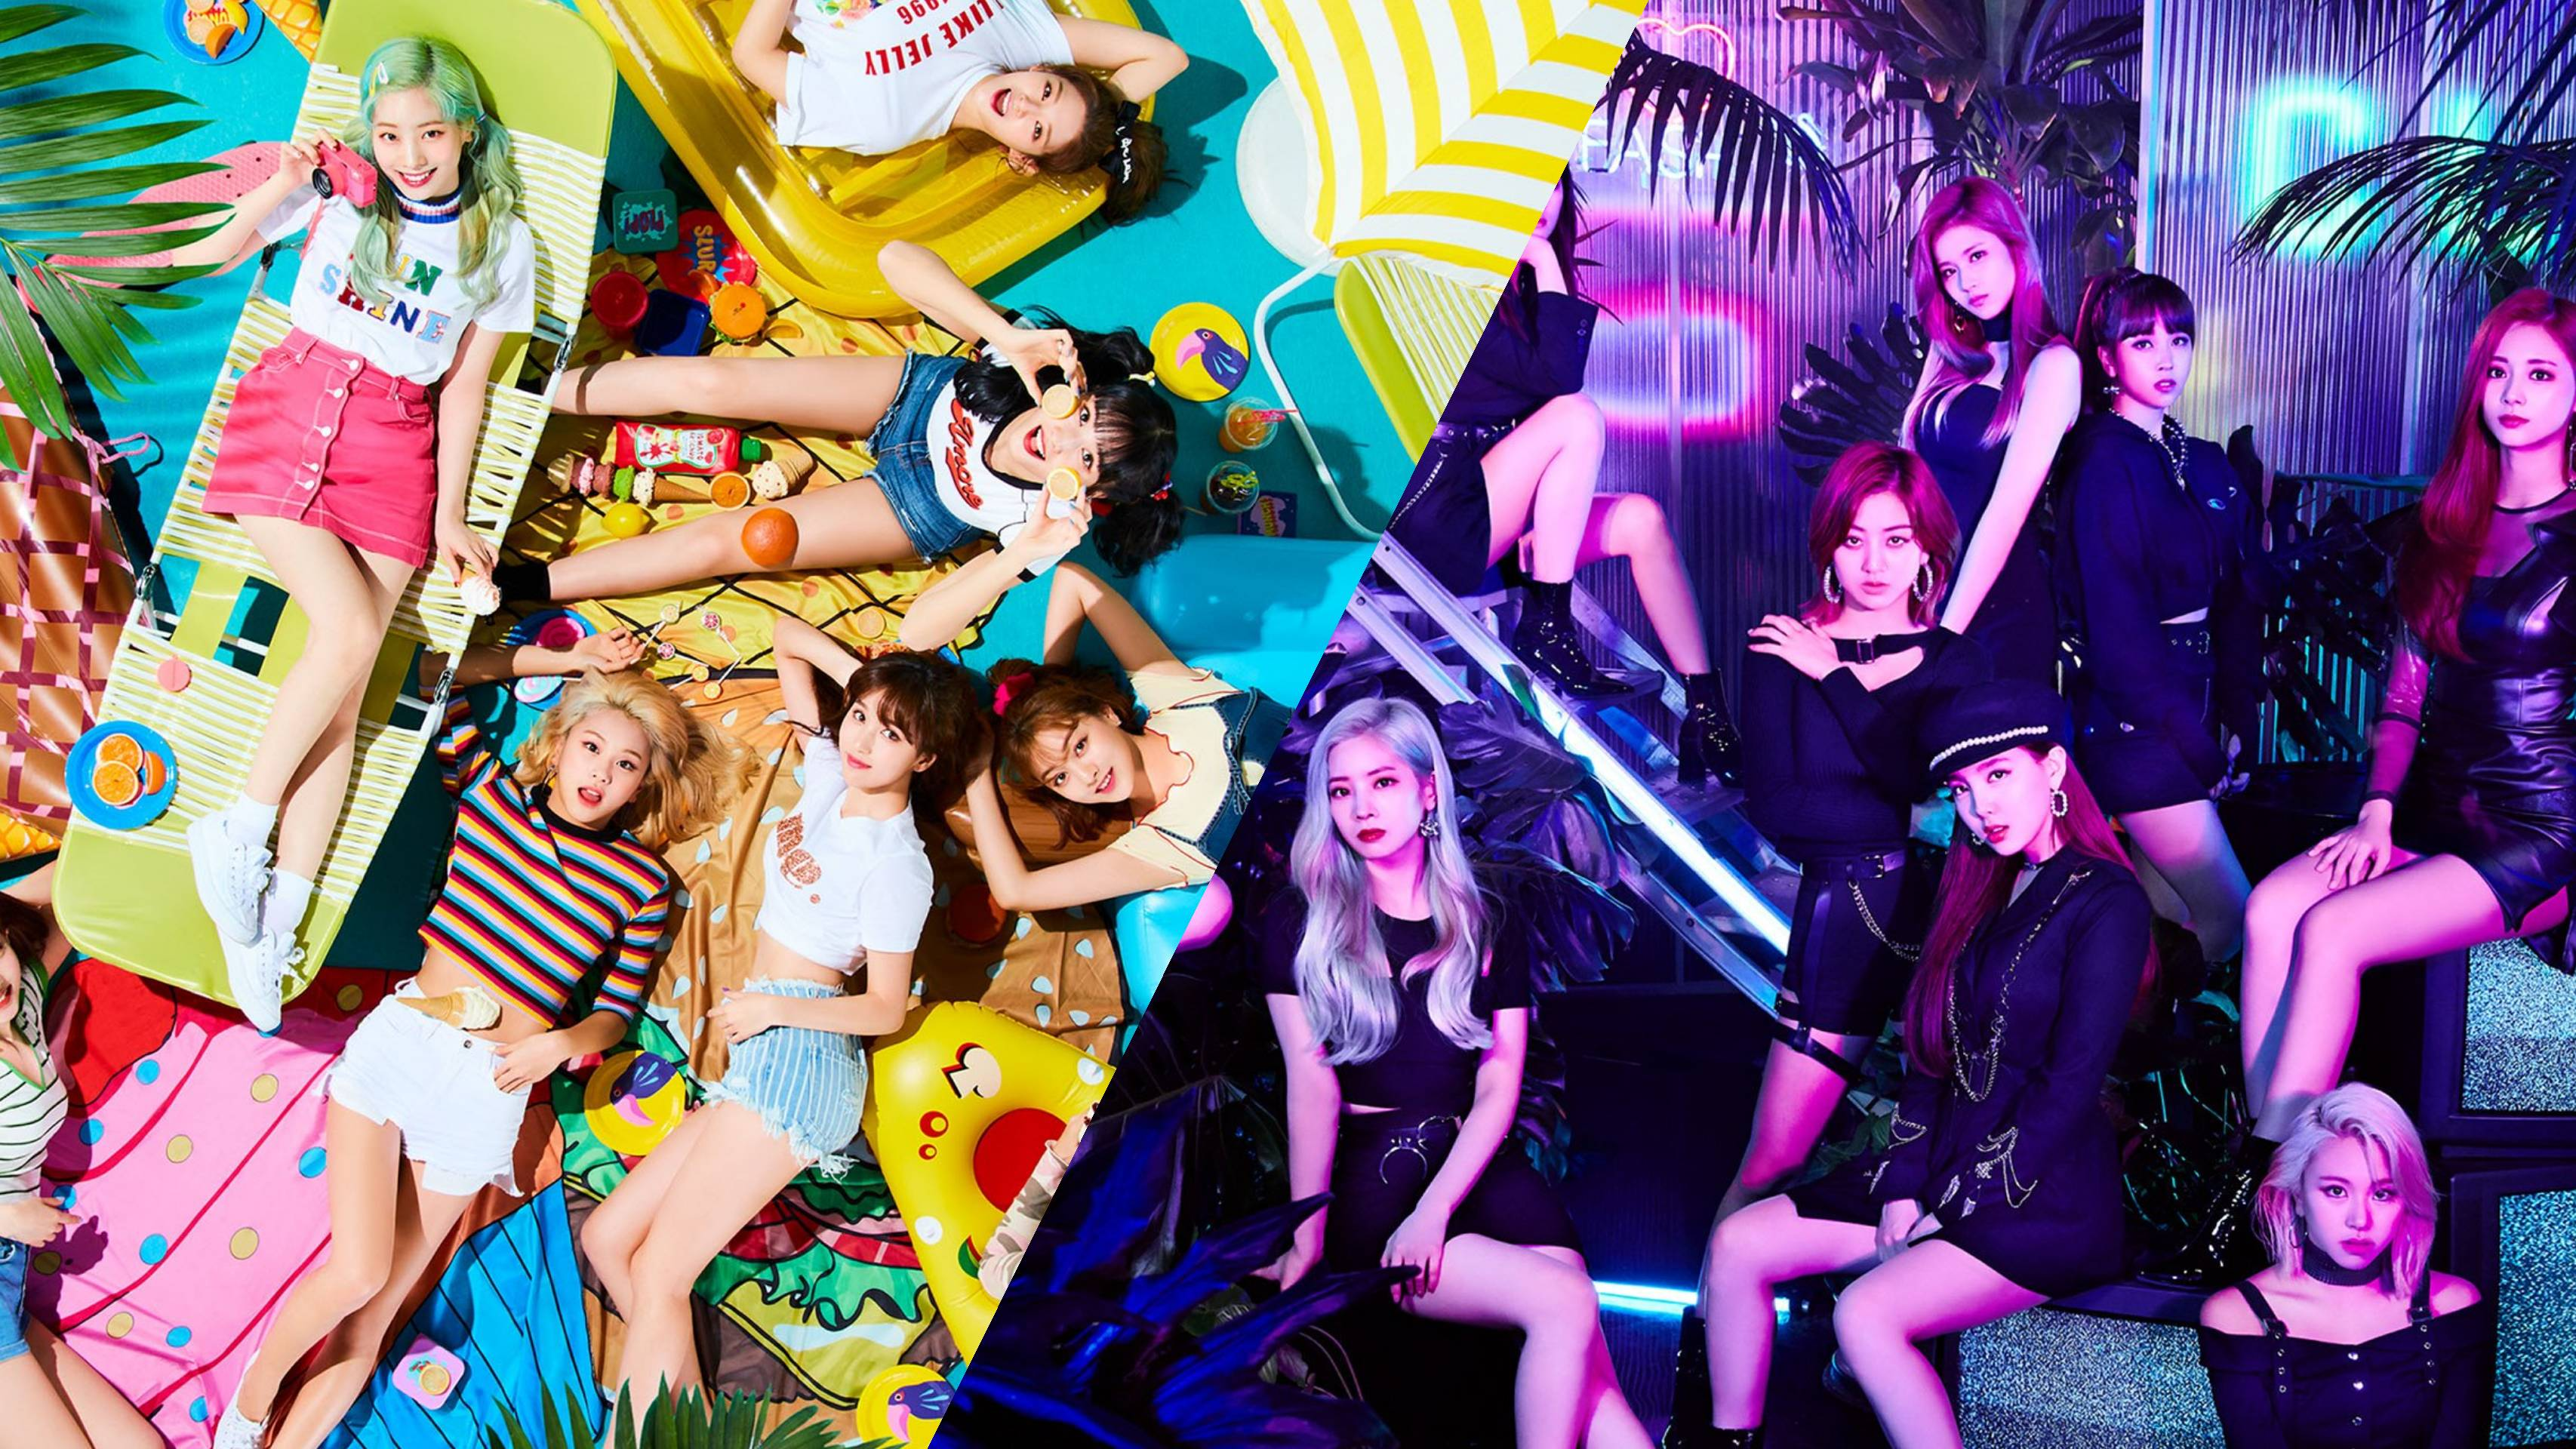 Twice Wallpaper Hd Posted By Samantha Simpson